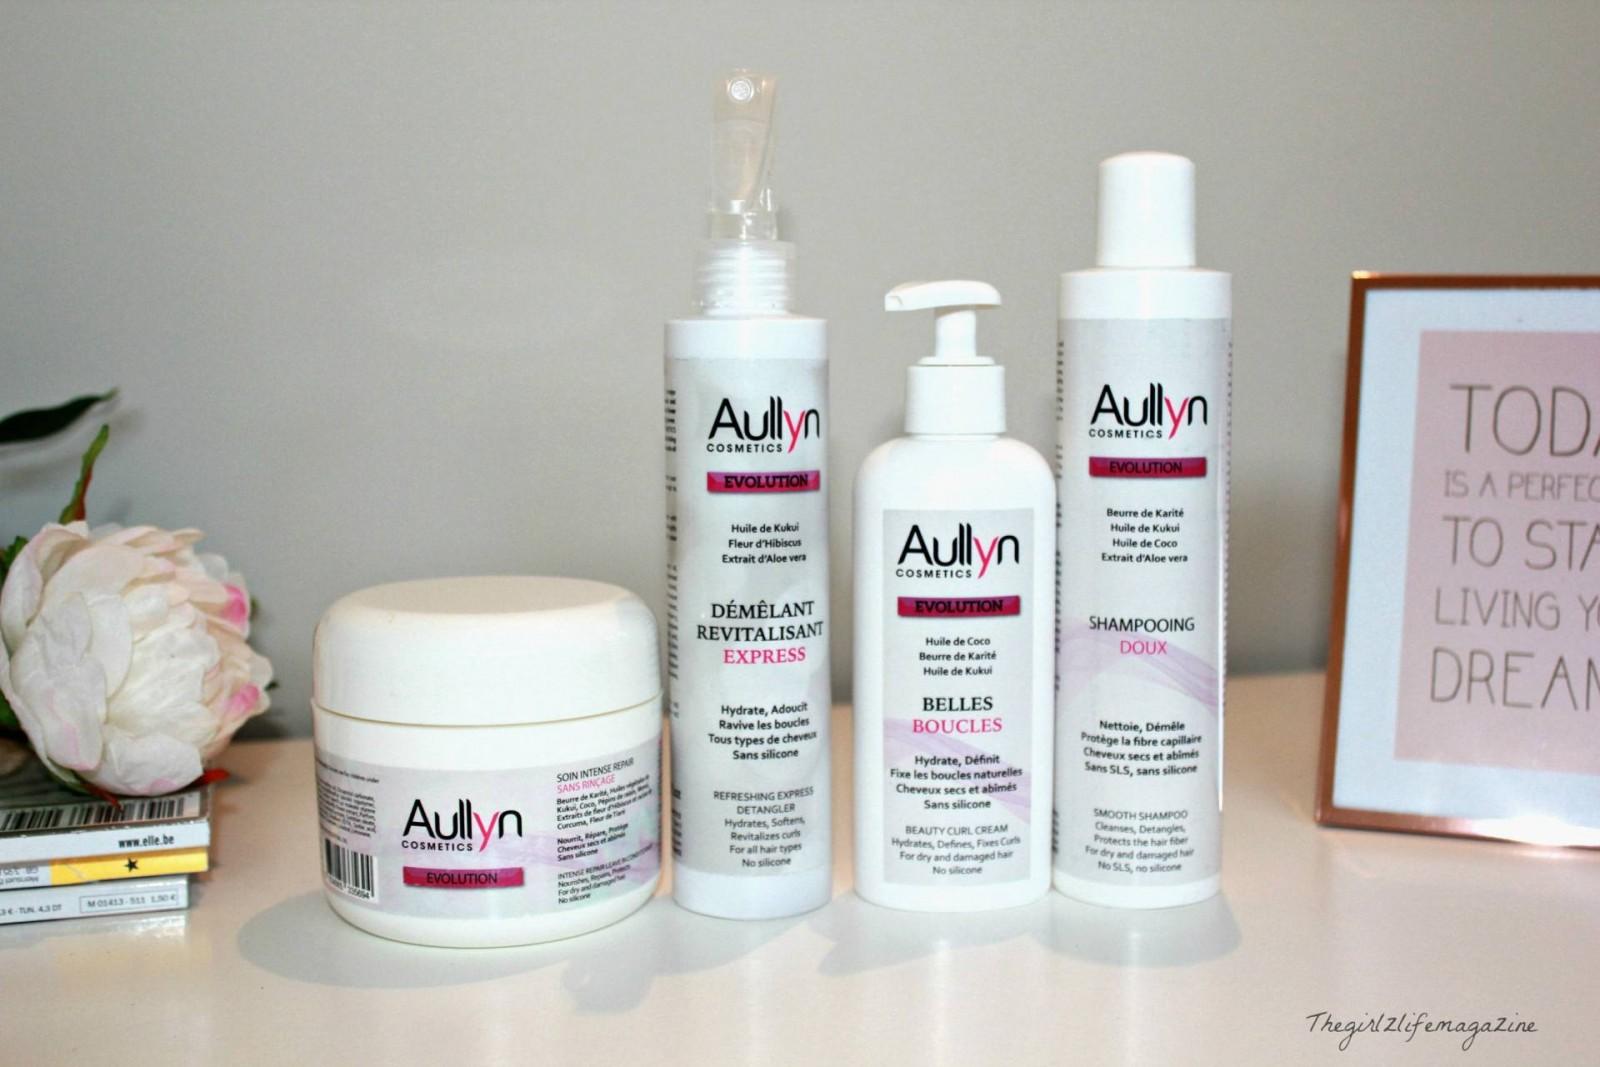 Aullyn Cosmetics: des soins capillaires naturels comme on les aime!